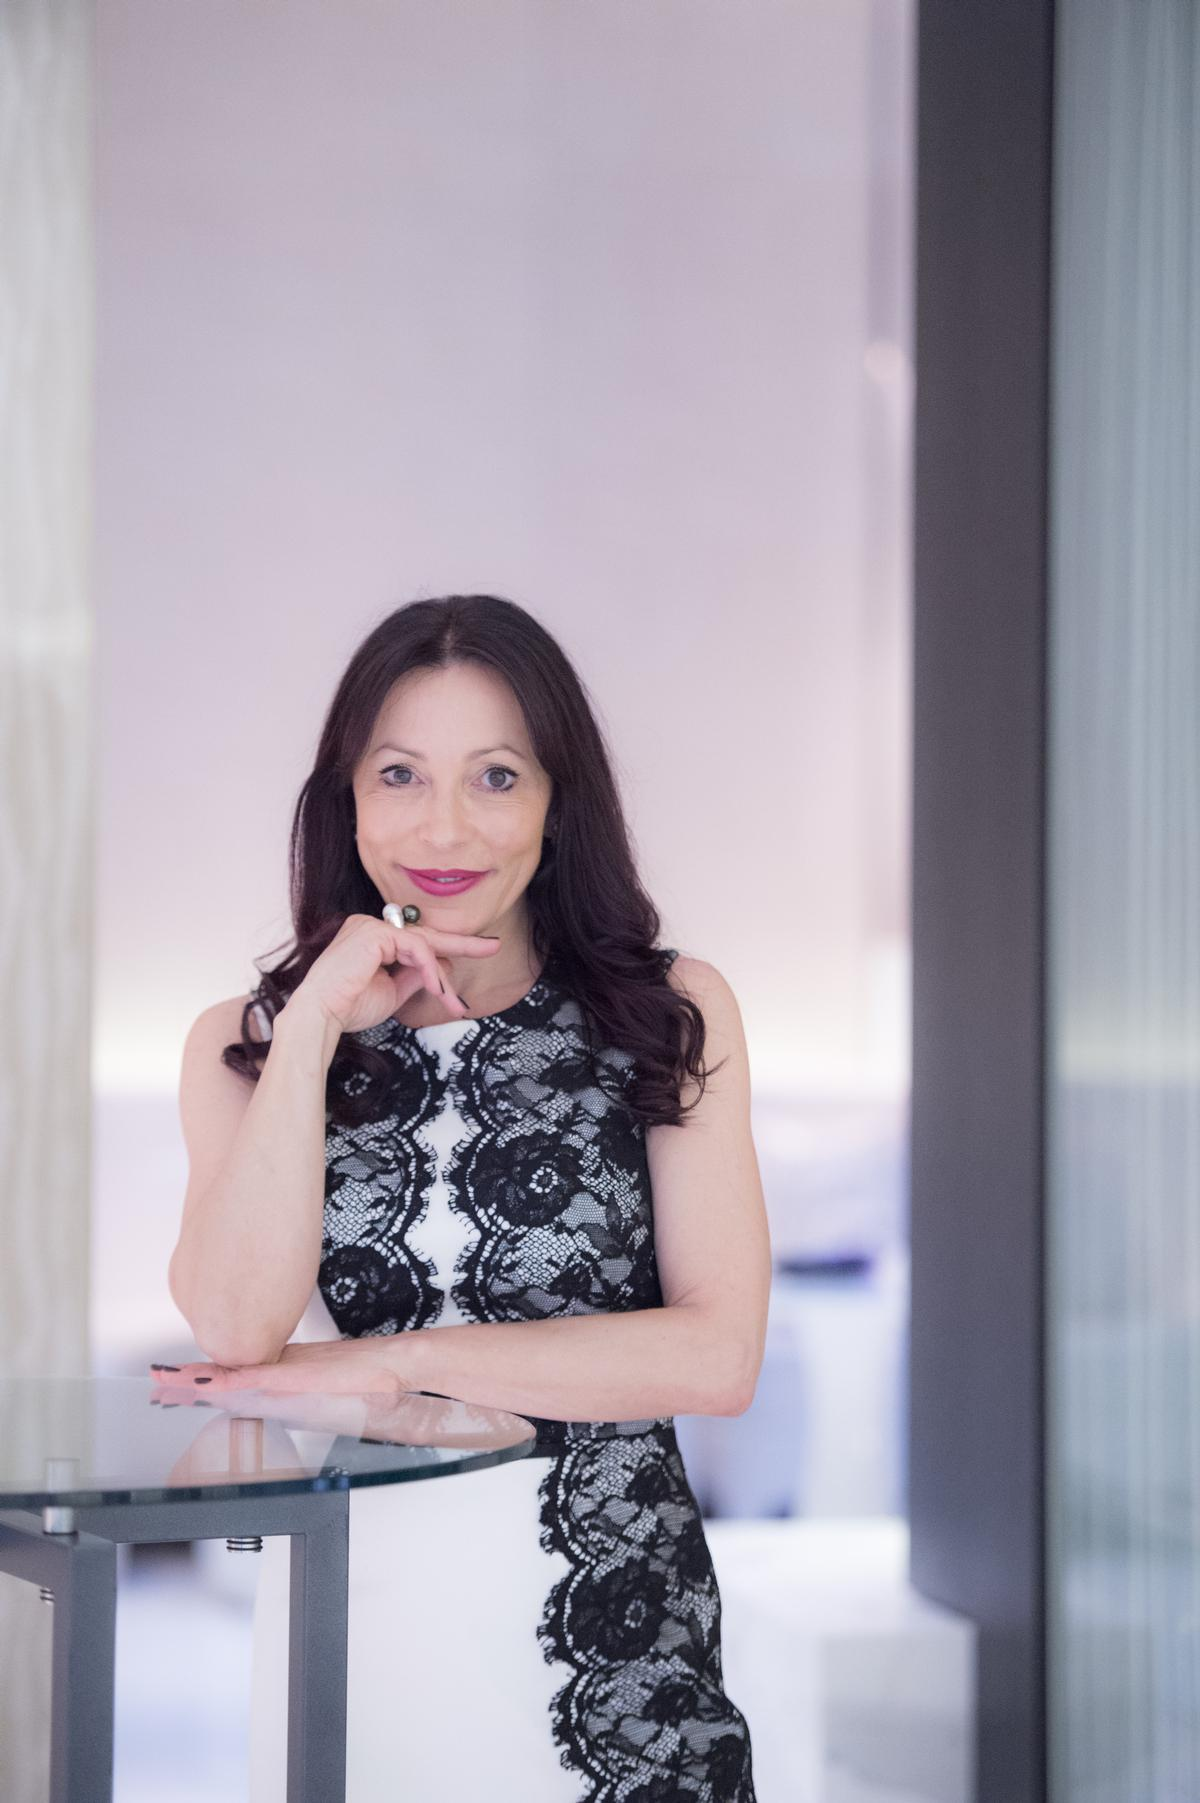 The programme will debut at the ESPA Life at Corinthia spa, where Laura Vallati is spa director